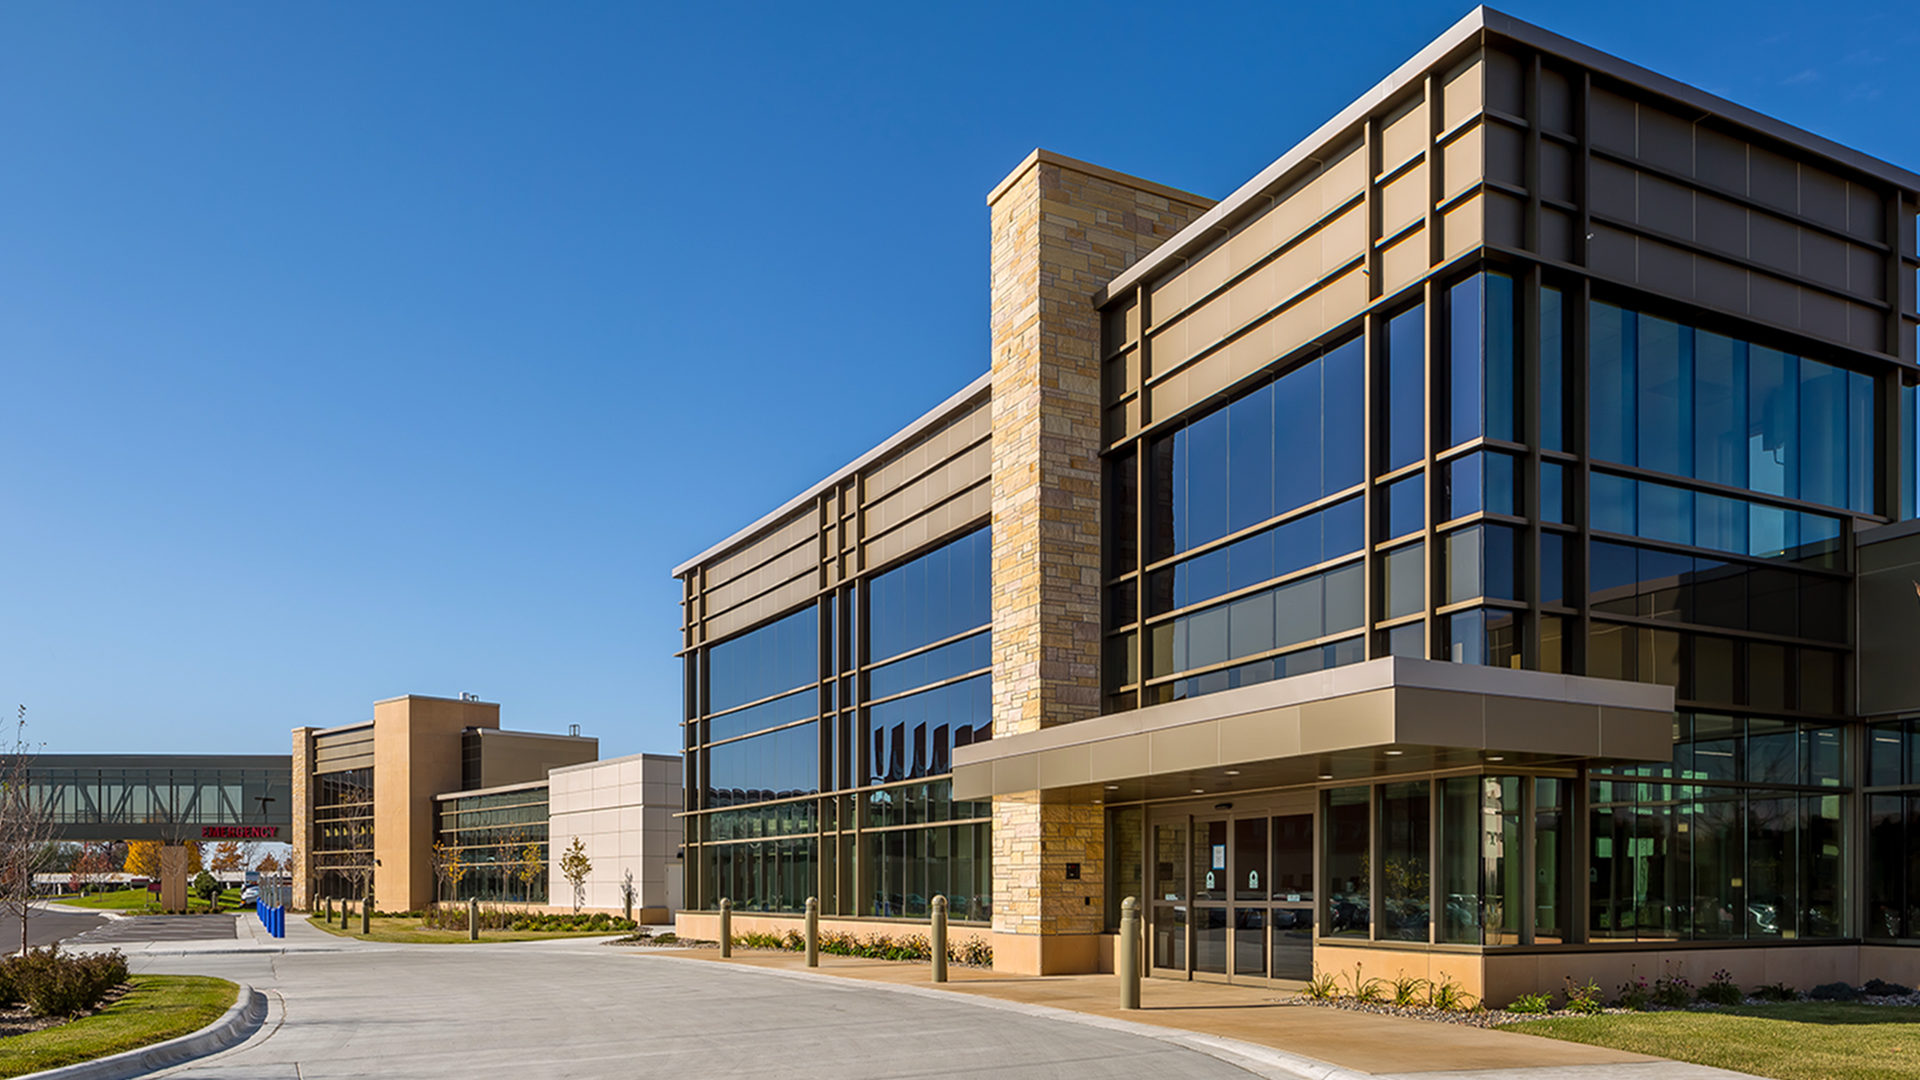 Fairview Ridges Hospital Addition and Renovations Burnsville Exterior View of the New Entrance and Skyway